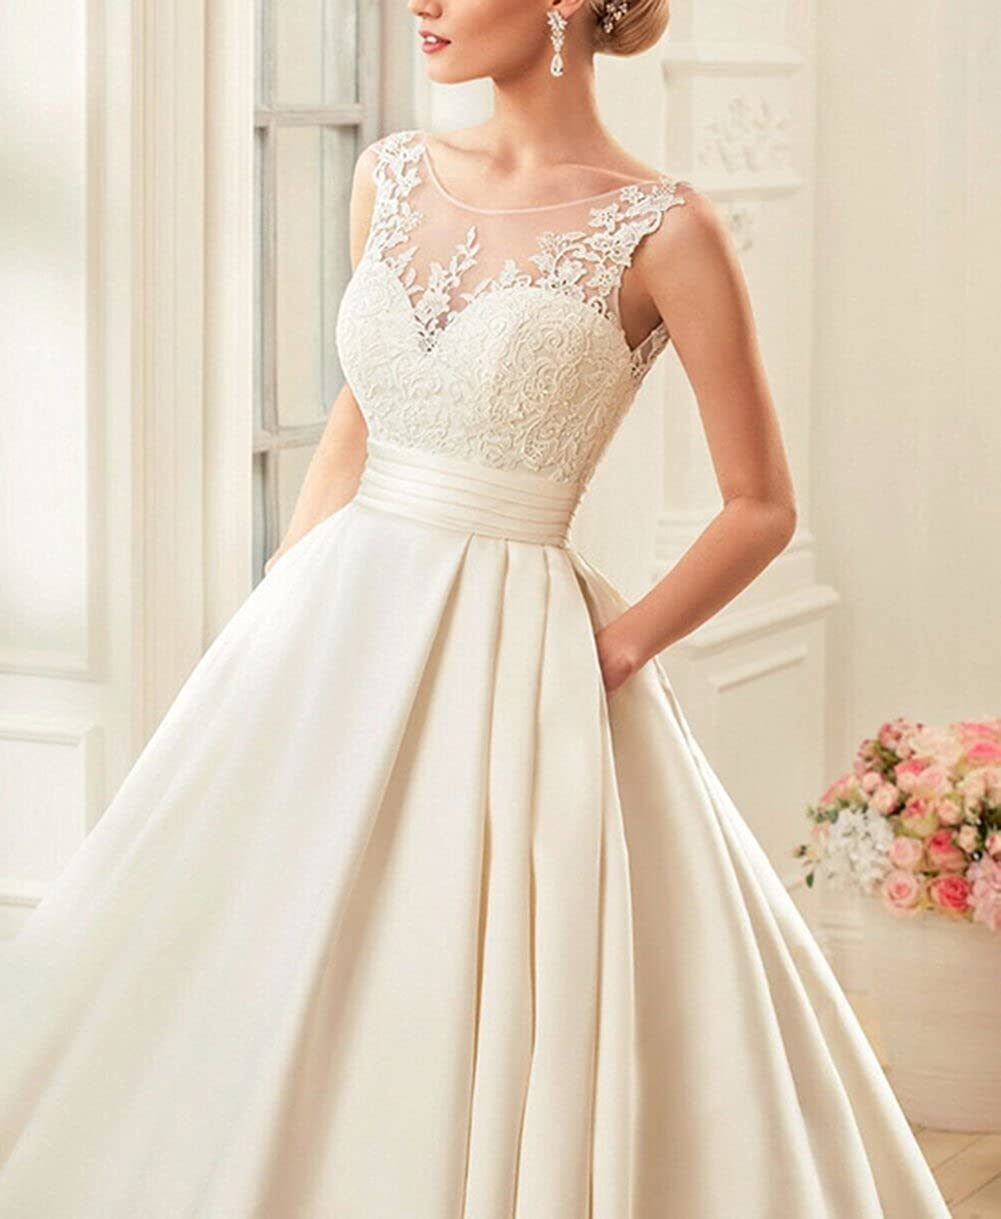 Lava-ring Womens A-line Round Neck Backless Wedding Dress Spring New Arrival 2018 at Amazon Womens Clothing store: